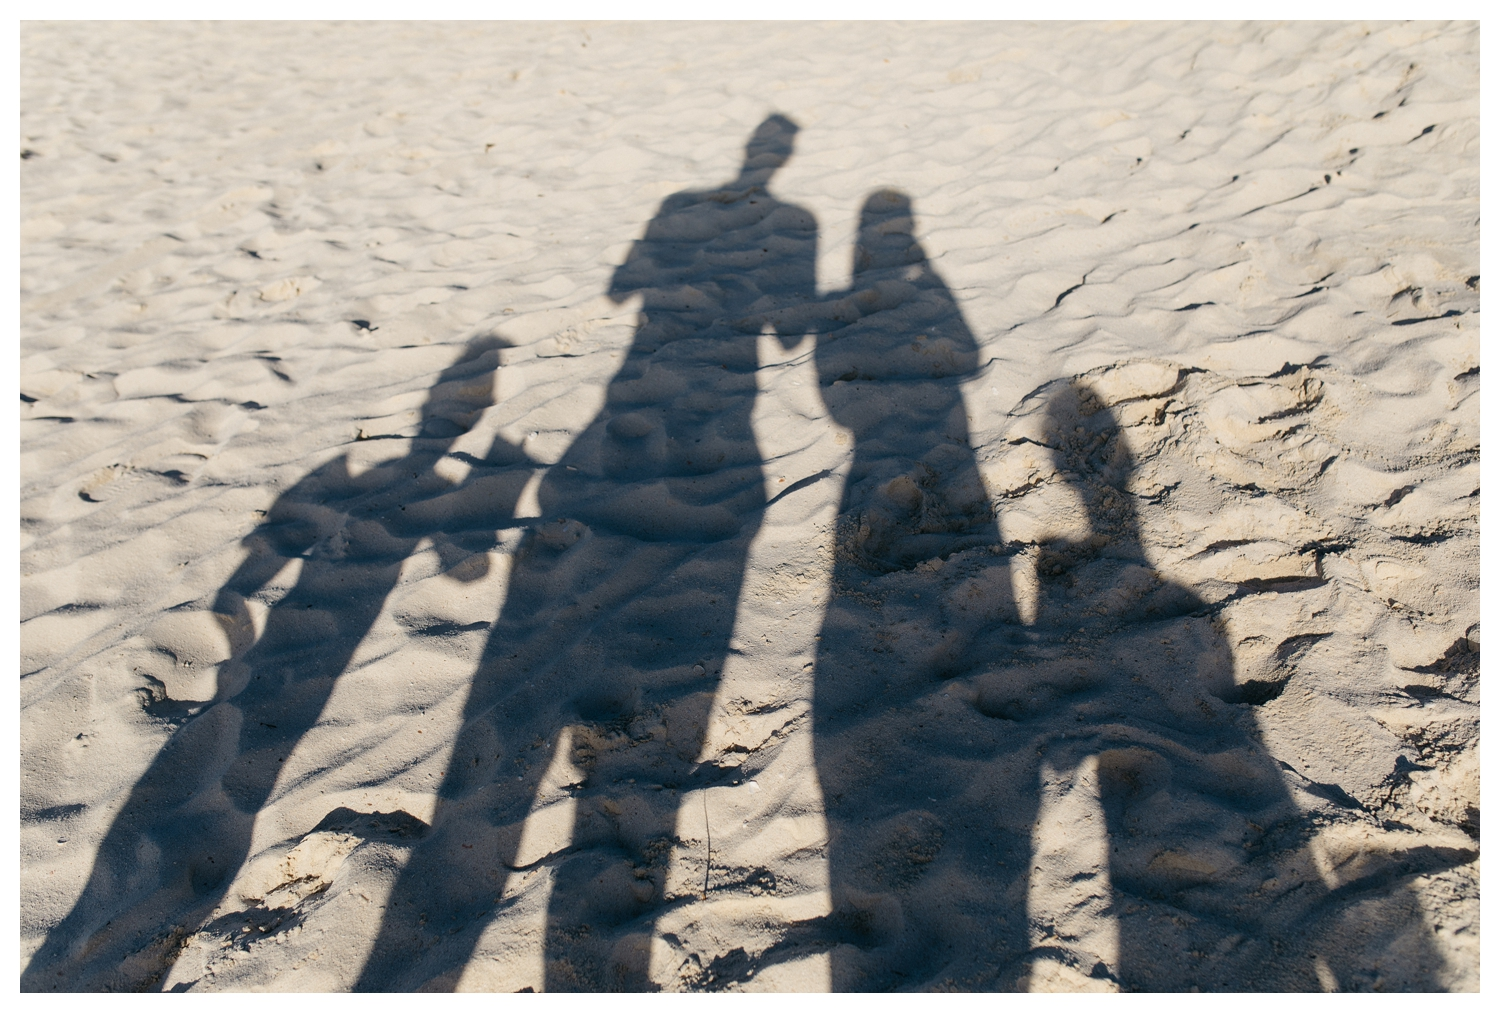 Orlando Family Shadow Portrait in Aruba Sand.jpg